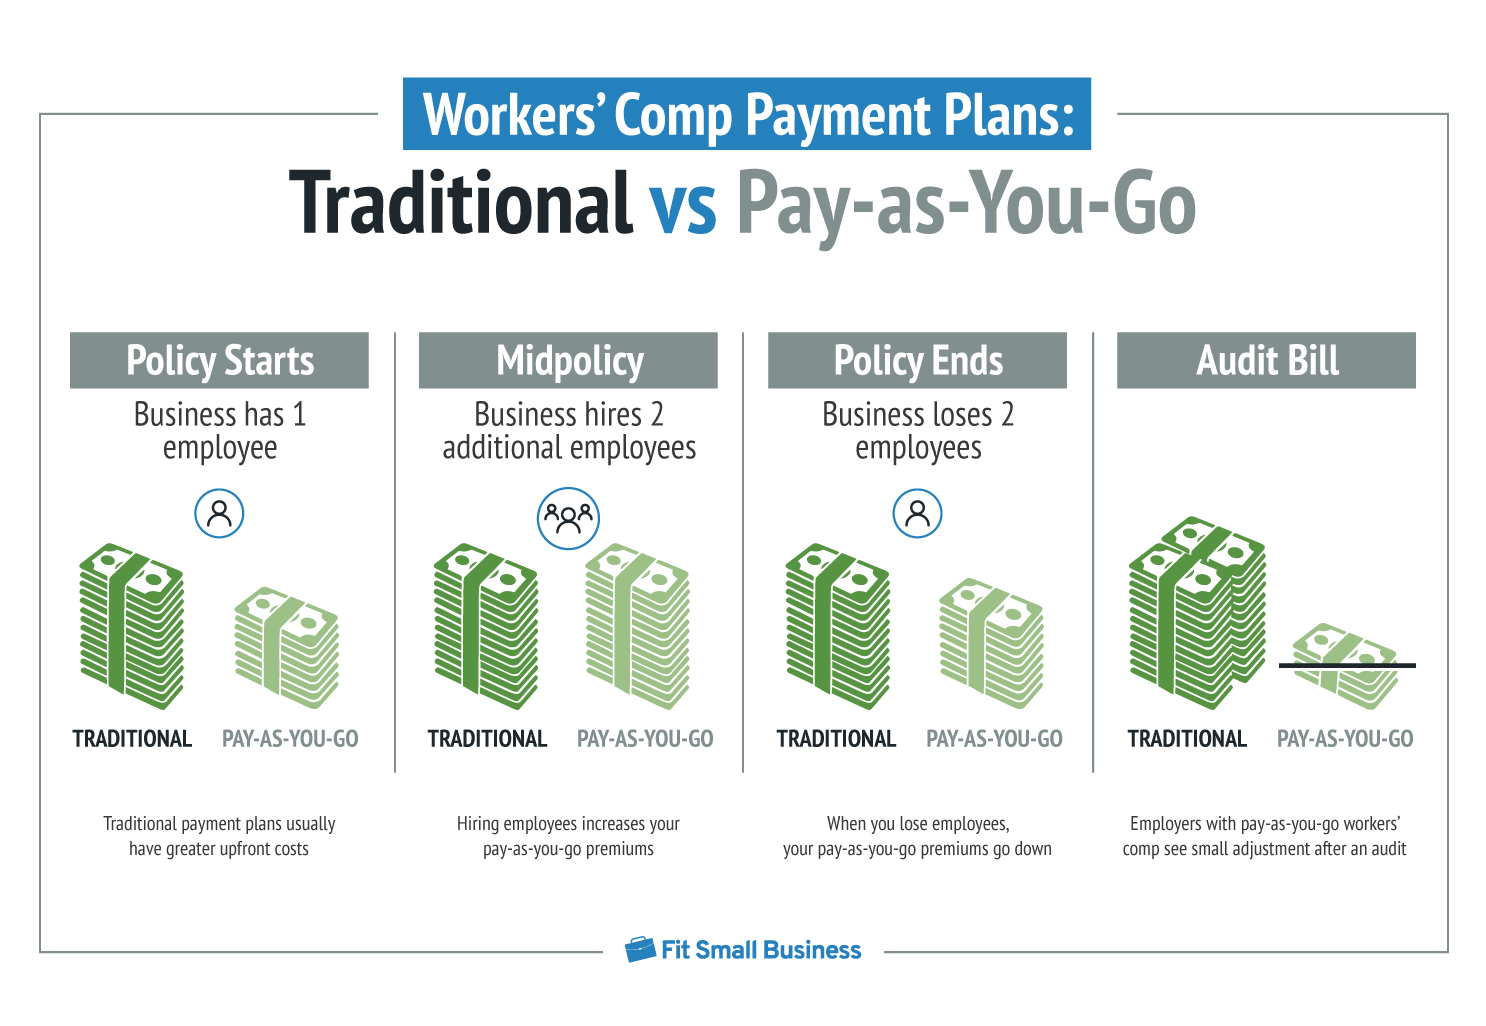 Traditional vs Pay-as-You-Go